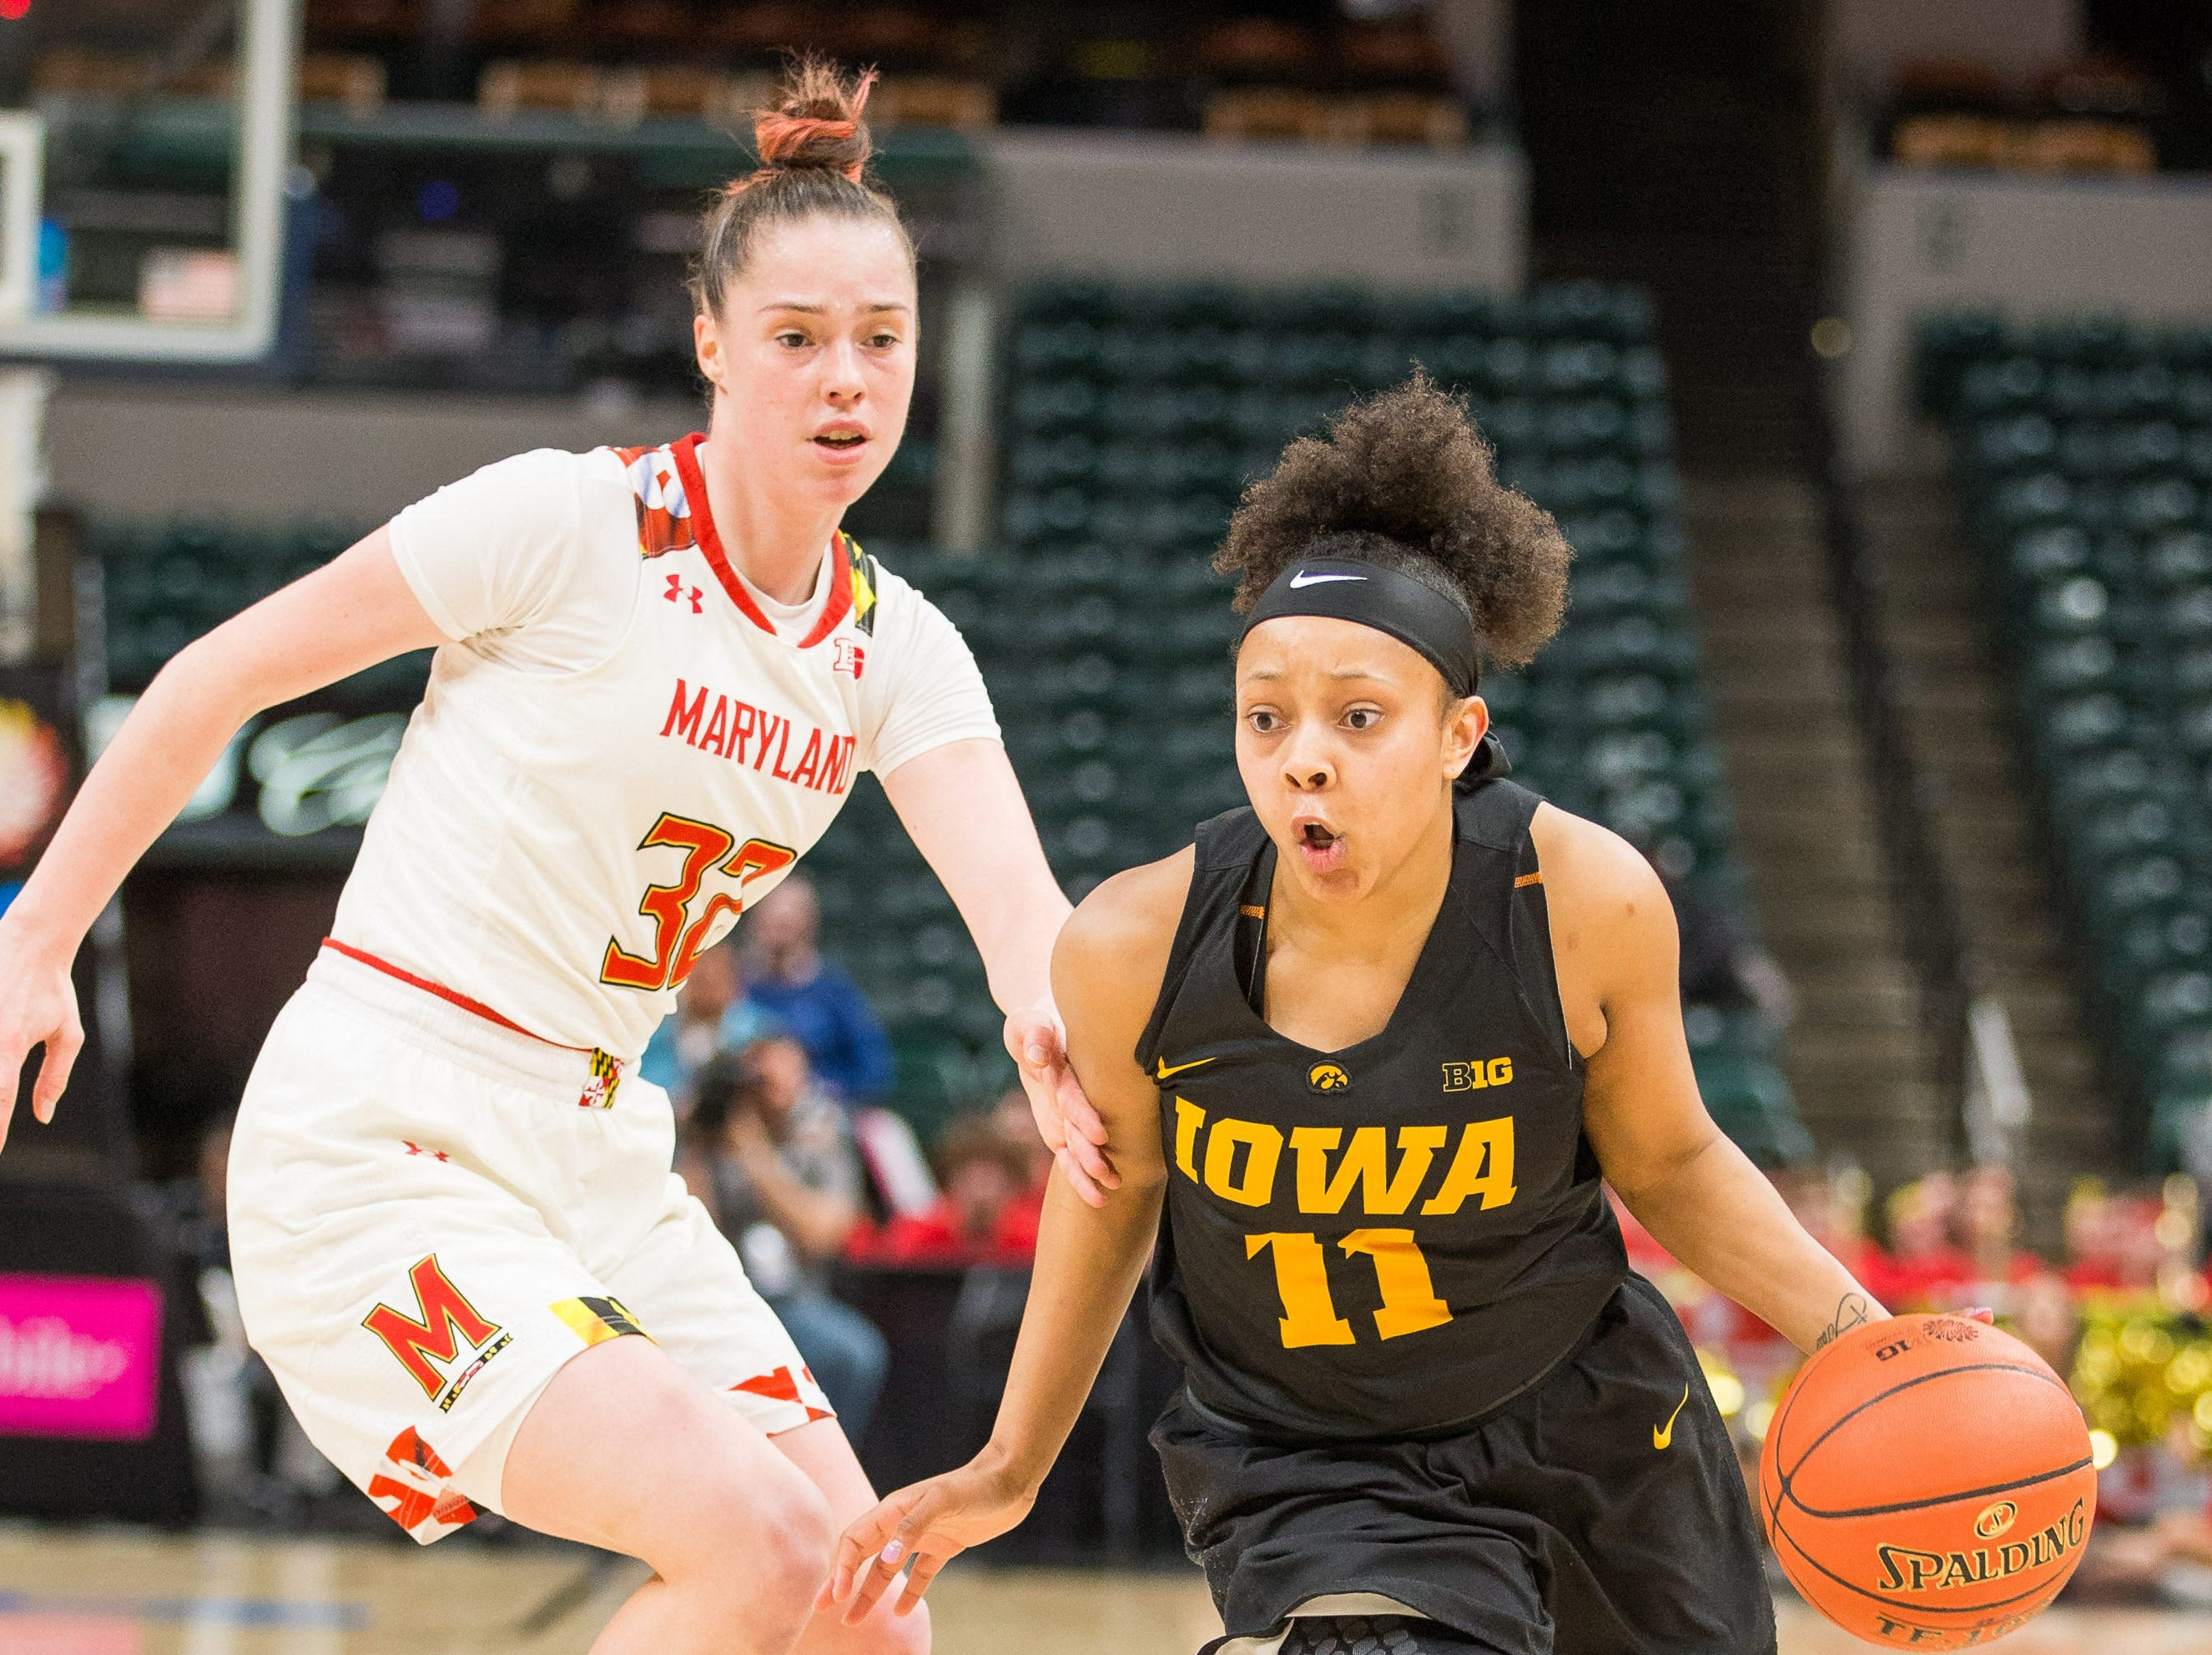 Iowa Hawkeyes guard Tania Davis (11) dribbles the ball while Maryland Terrapins guard Sara Vujacic (32) defends in the second half in the women's Big Ten Conference Tournament at Bankers Life Fieldhouse.